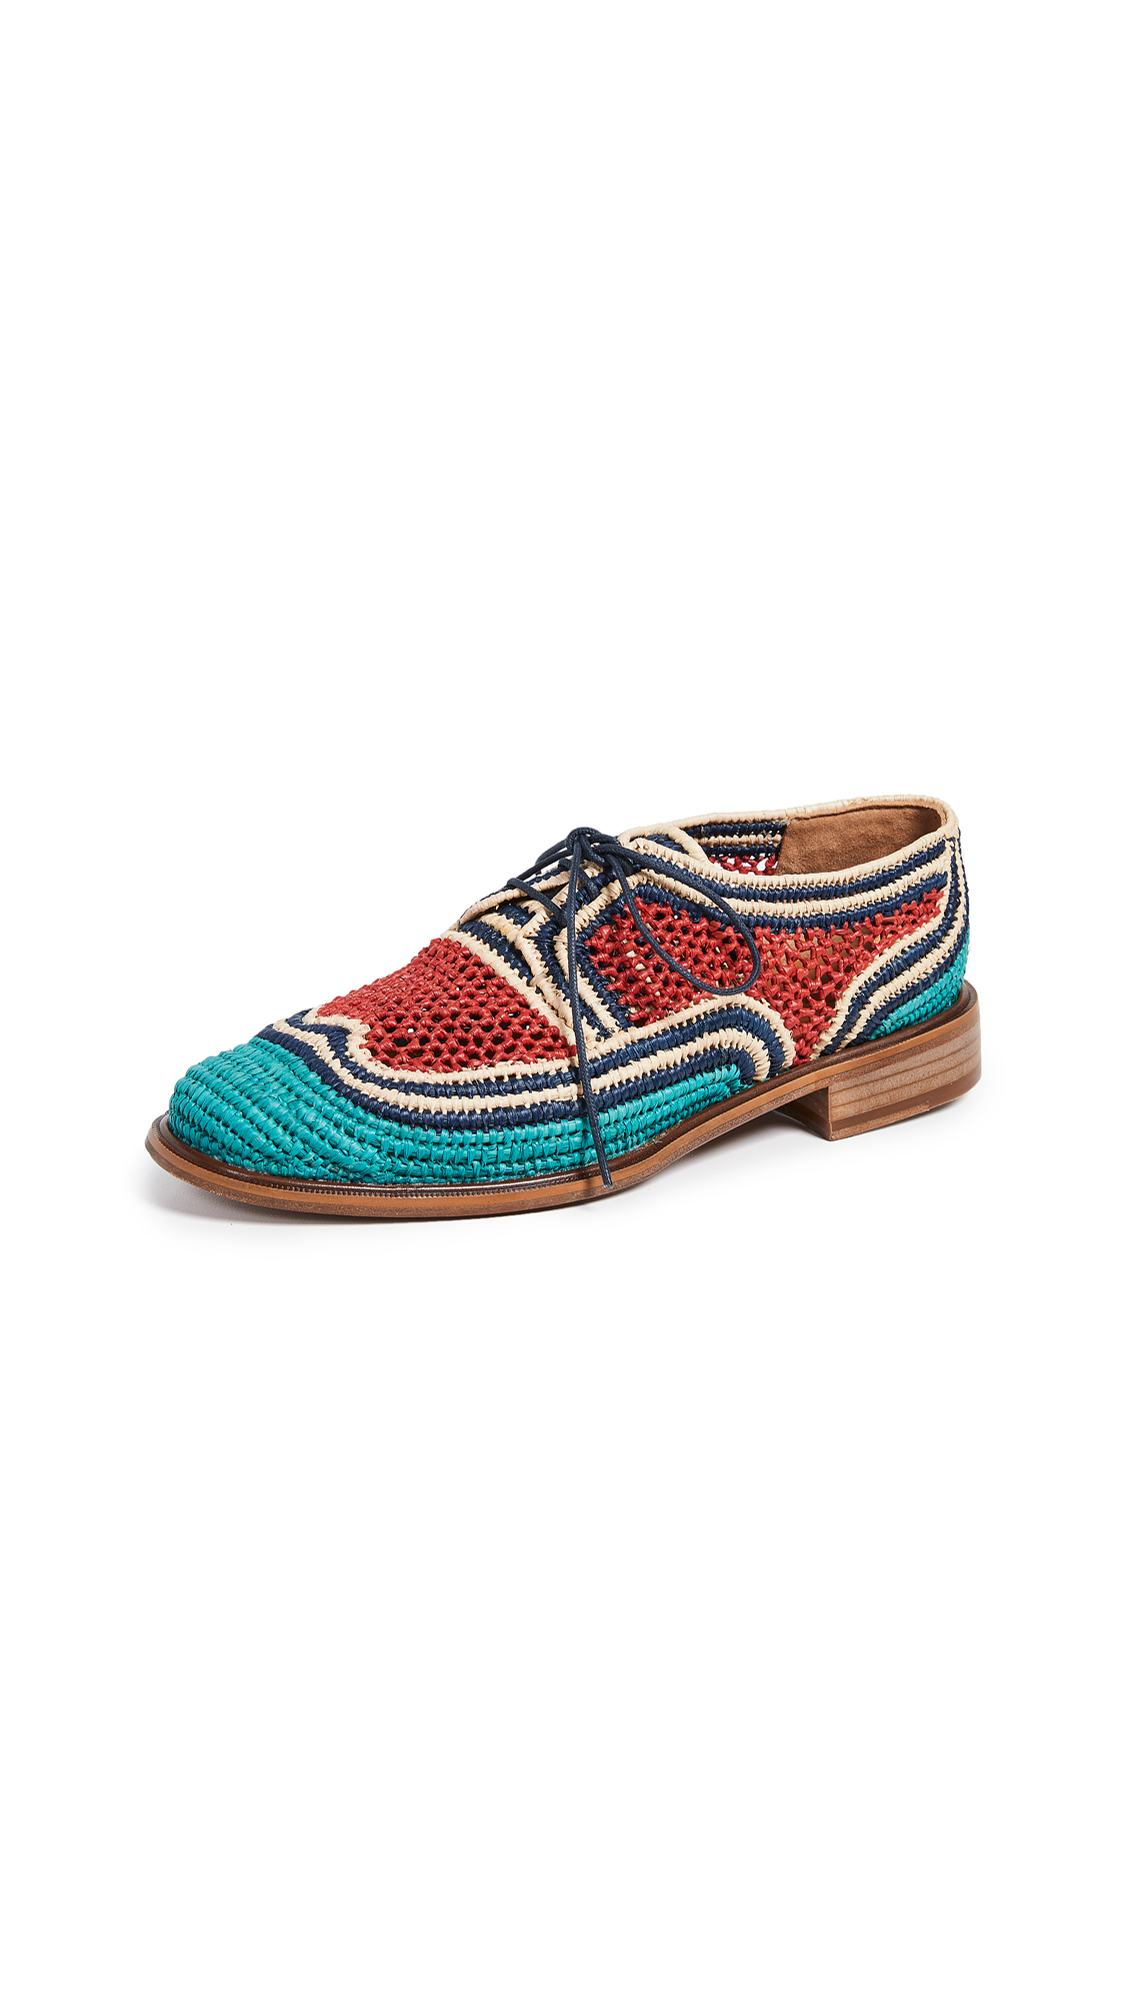 Robert Clergerie Japaille Oxfords - Turquoise/Marine/Nature